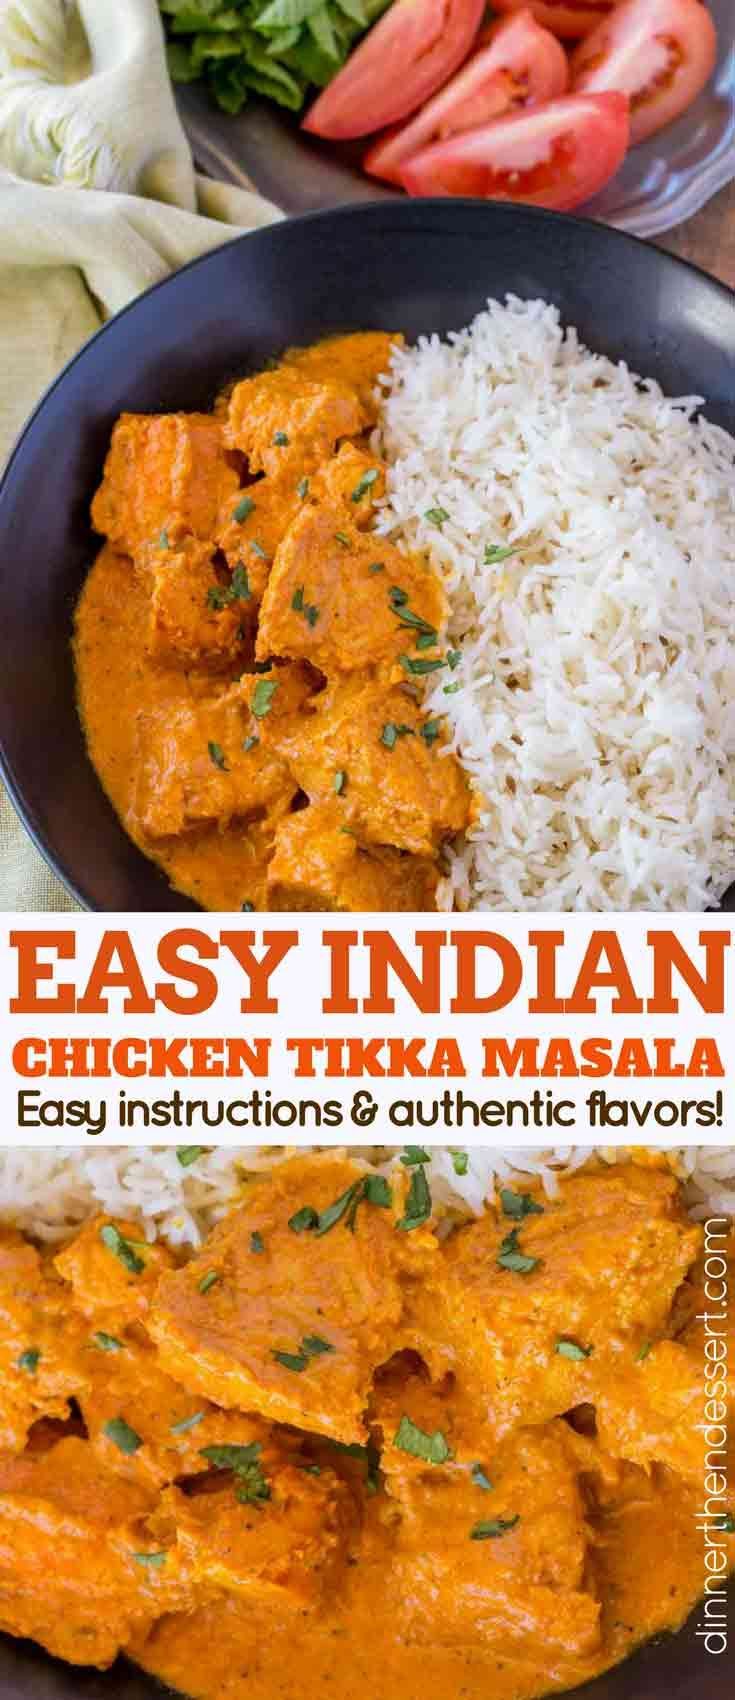 Chicken tikka masala collage good food dinner pinterest chicken tikka masala collage forumfinder Image collections